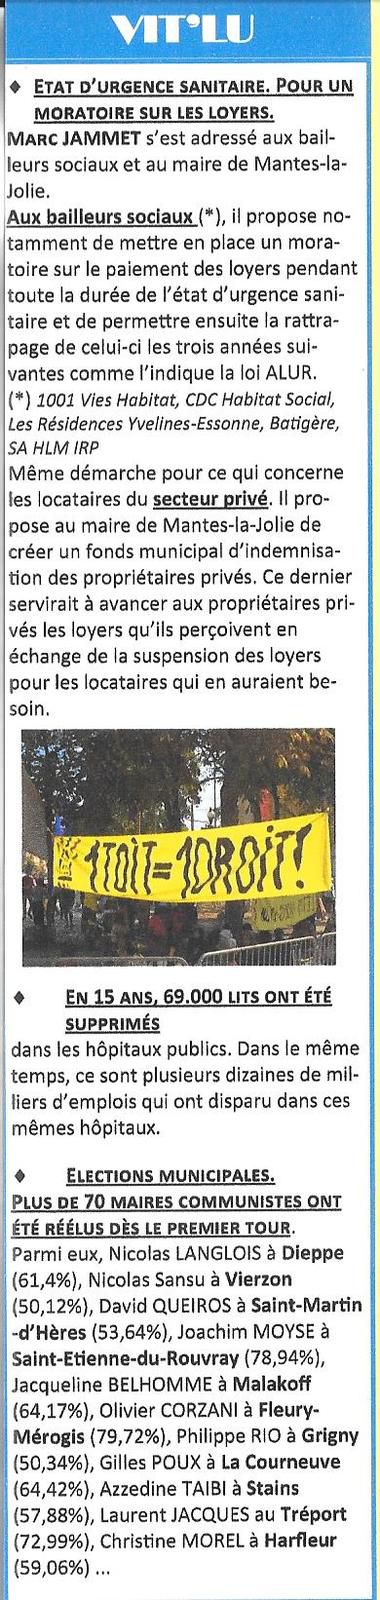 Mantes-la-Jolie. L'opinion des communistes (n° 87).